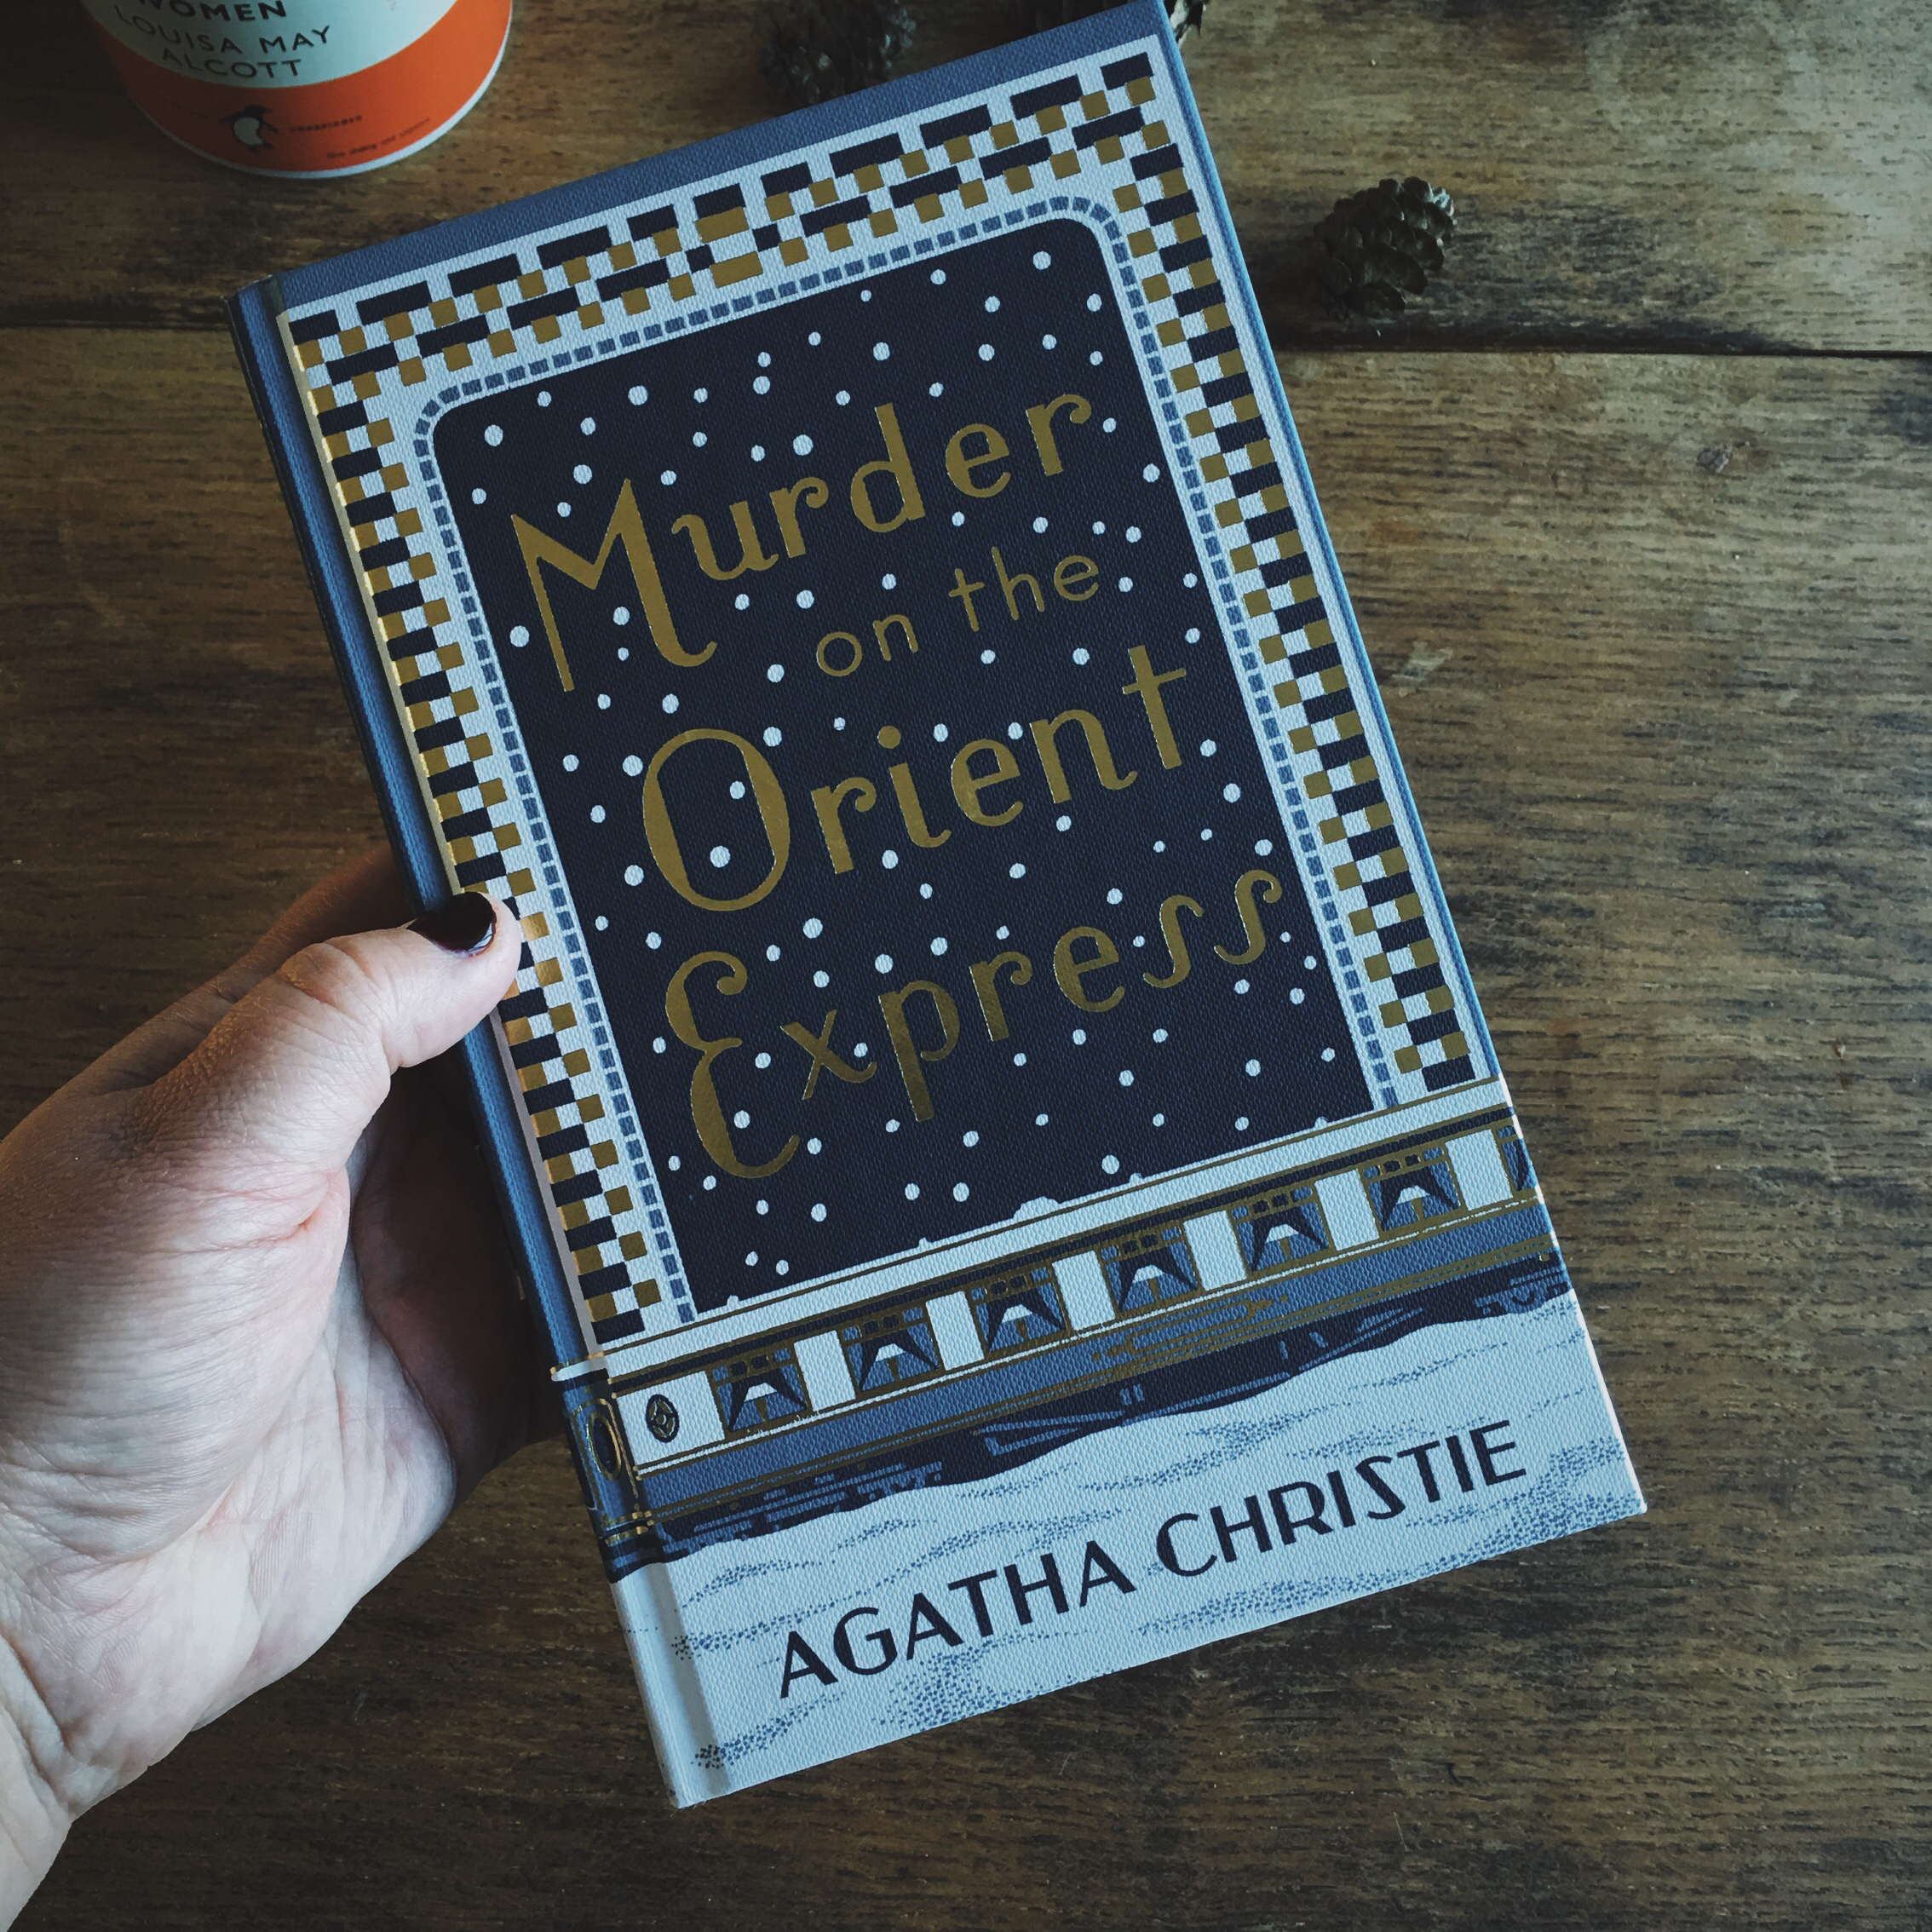 Murder on the orient express by agatha christie hardback edition